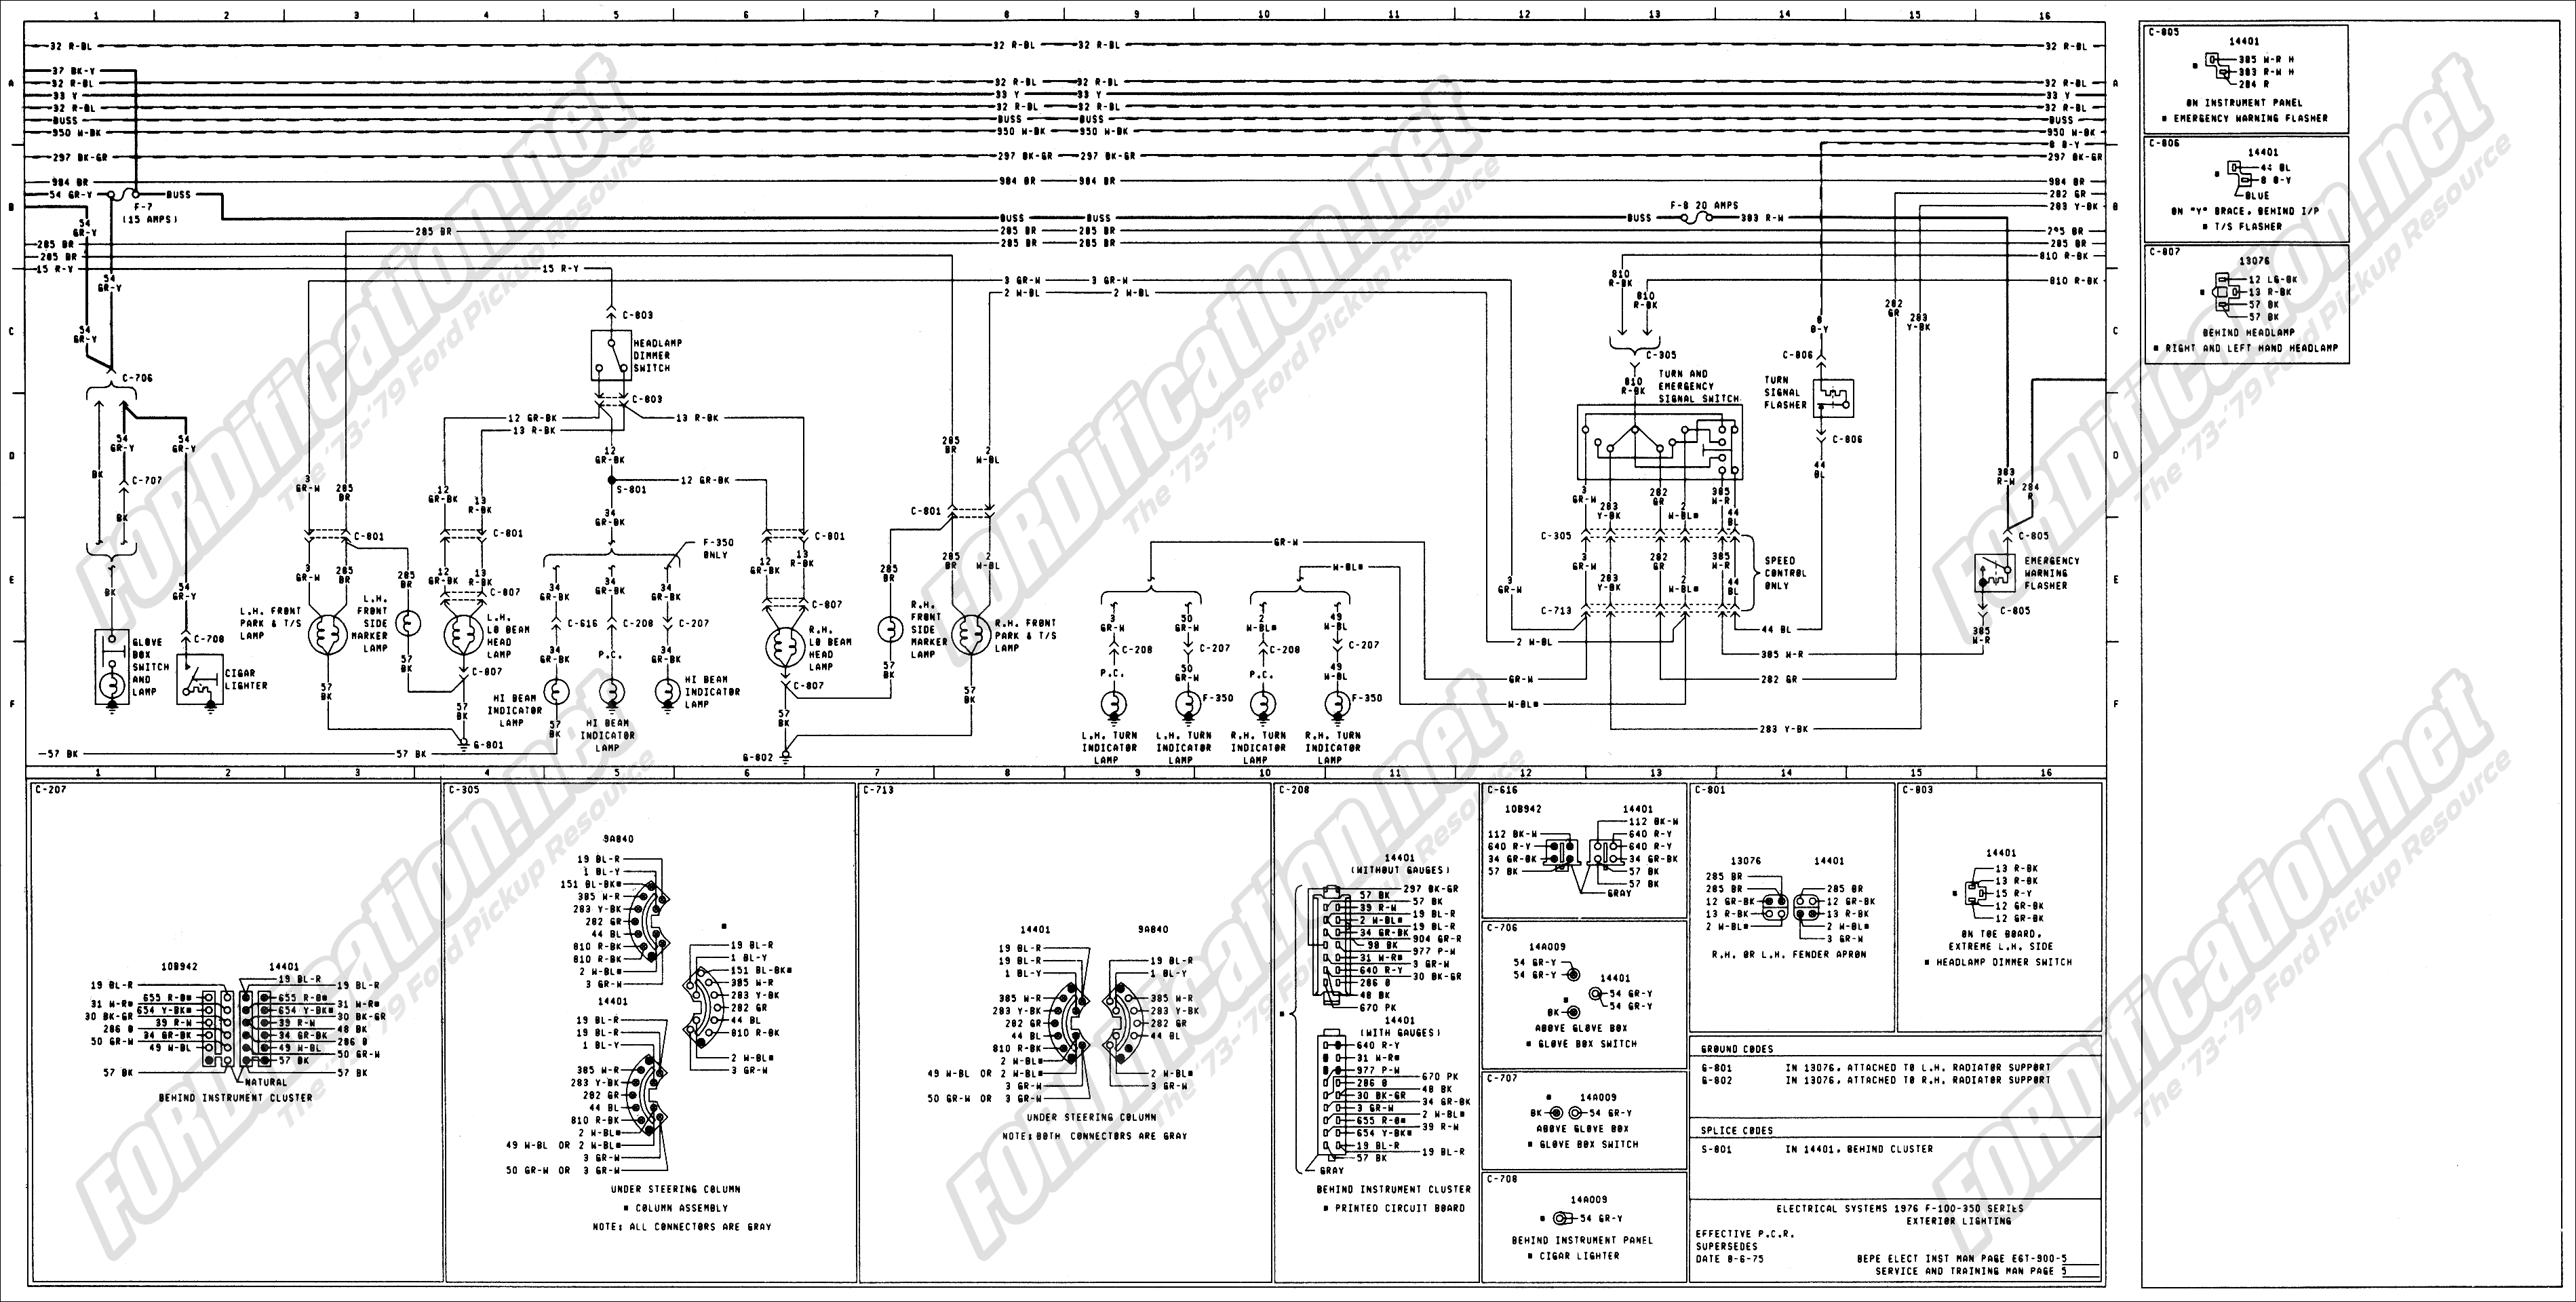 wiring_76master_5of9 1973 1979 ford truck wiring diagrams & schematics fordification net wiring diagram schematic at eliteediting.co